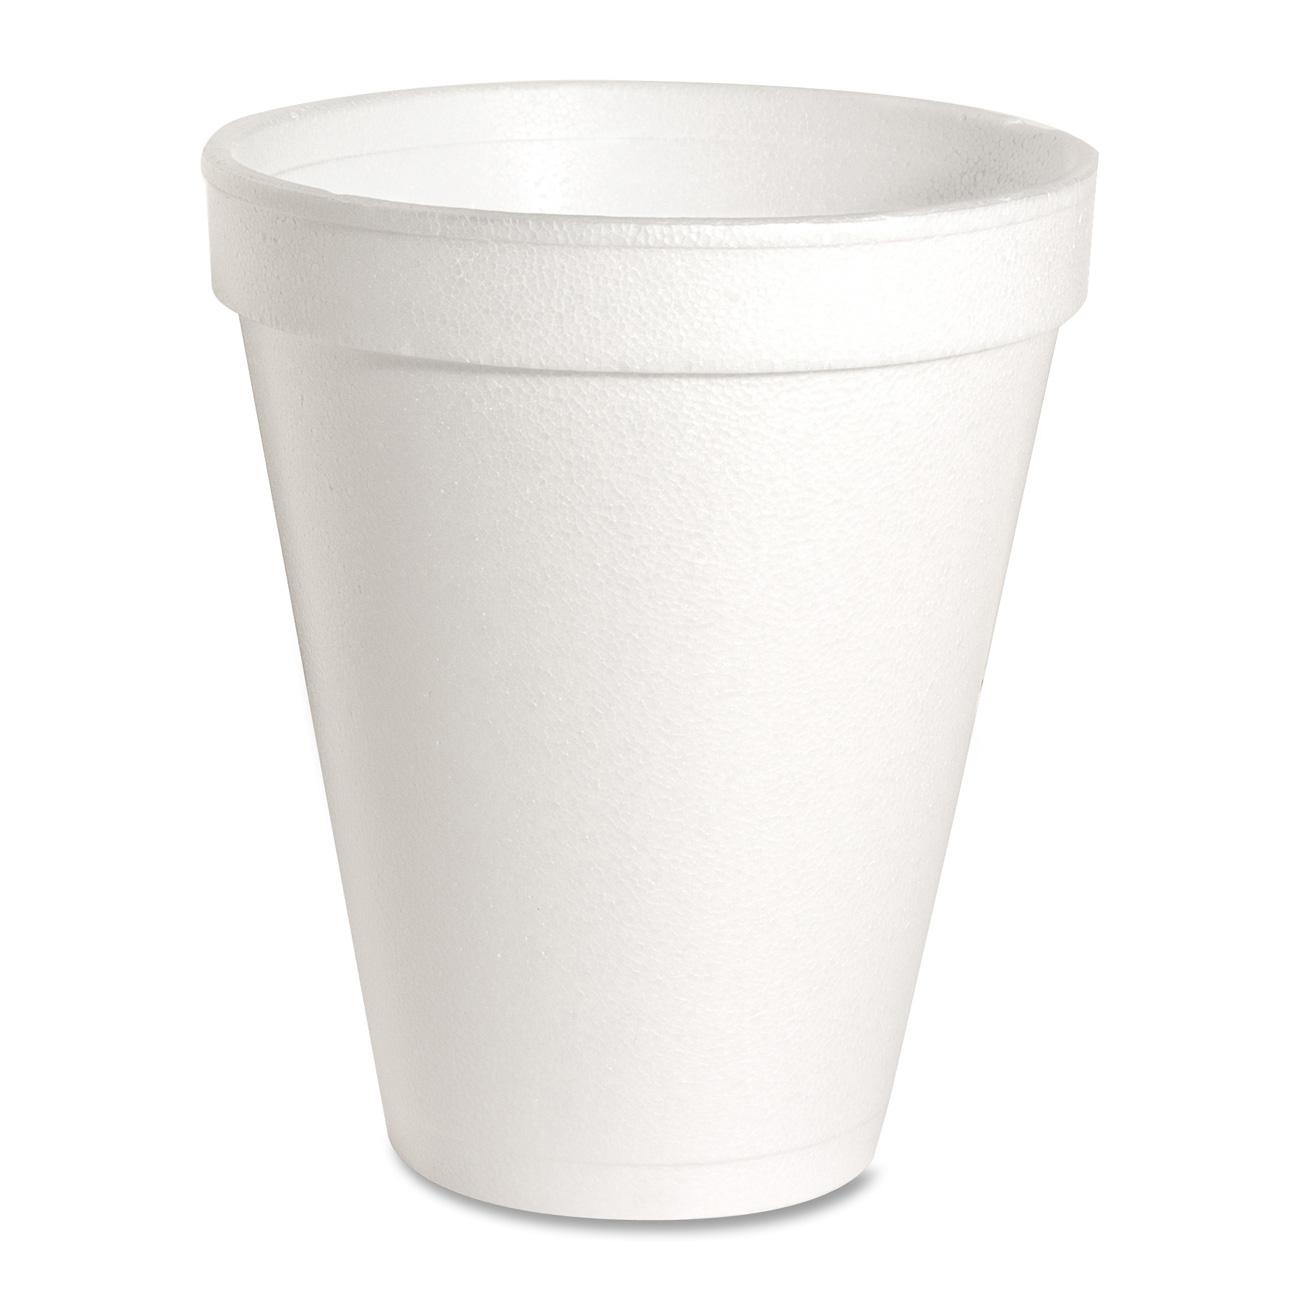 Dixie Cup Clipart Genuine Joe Hot Cold Foam Cup.